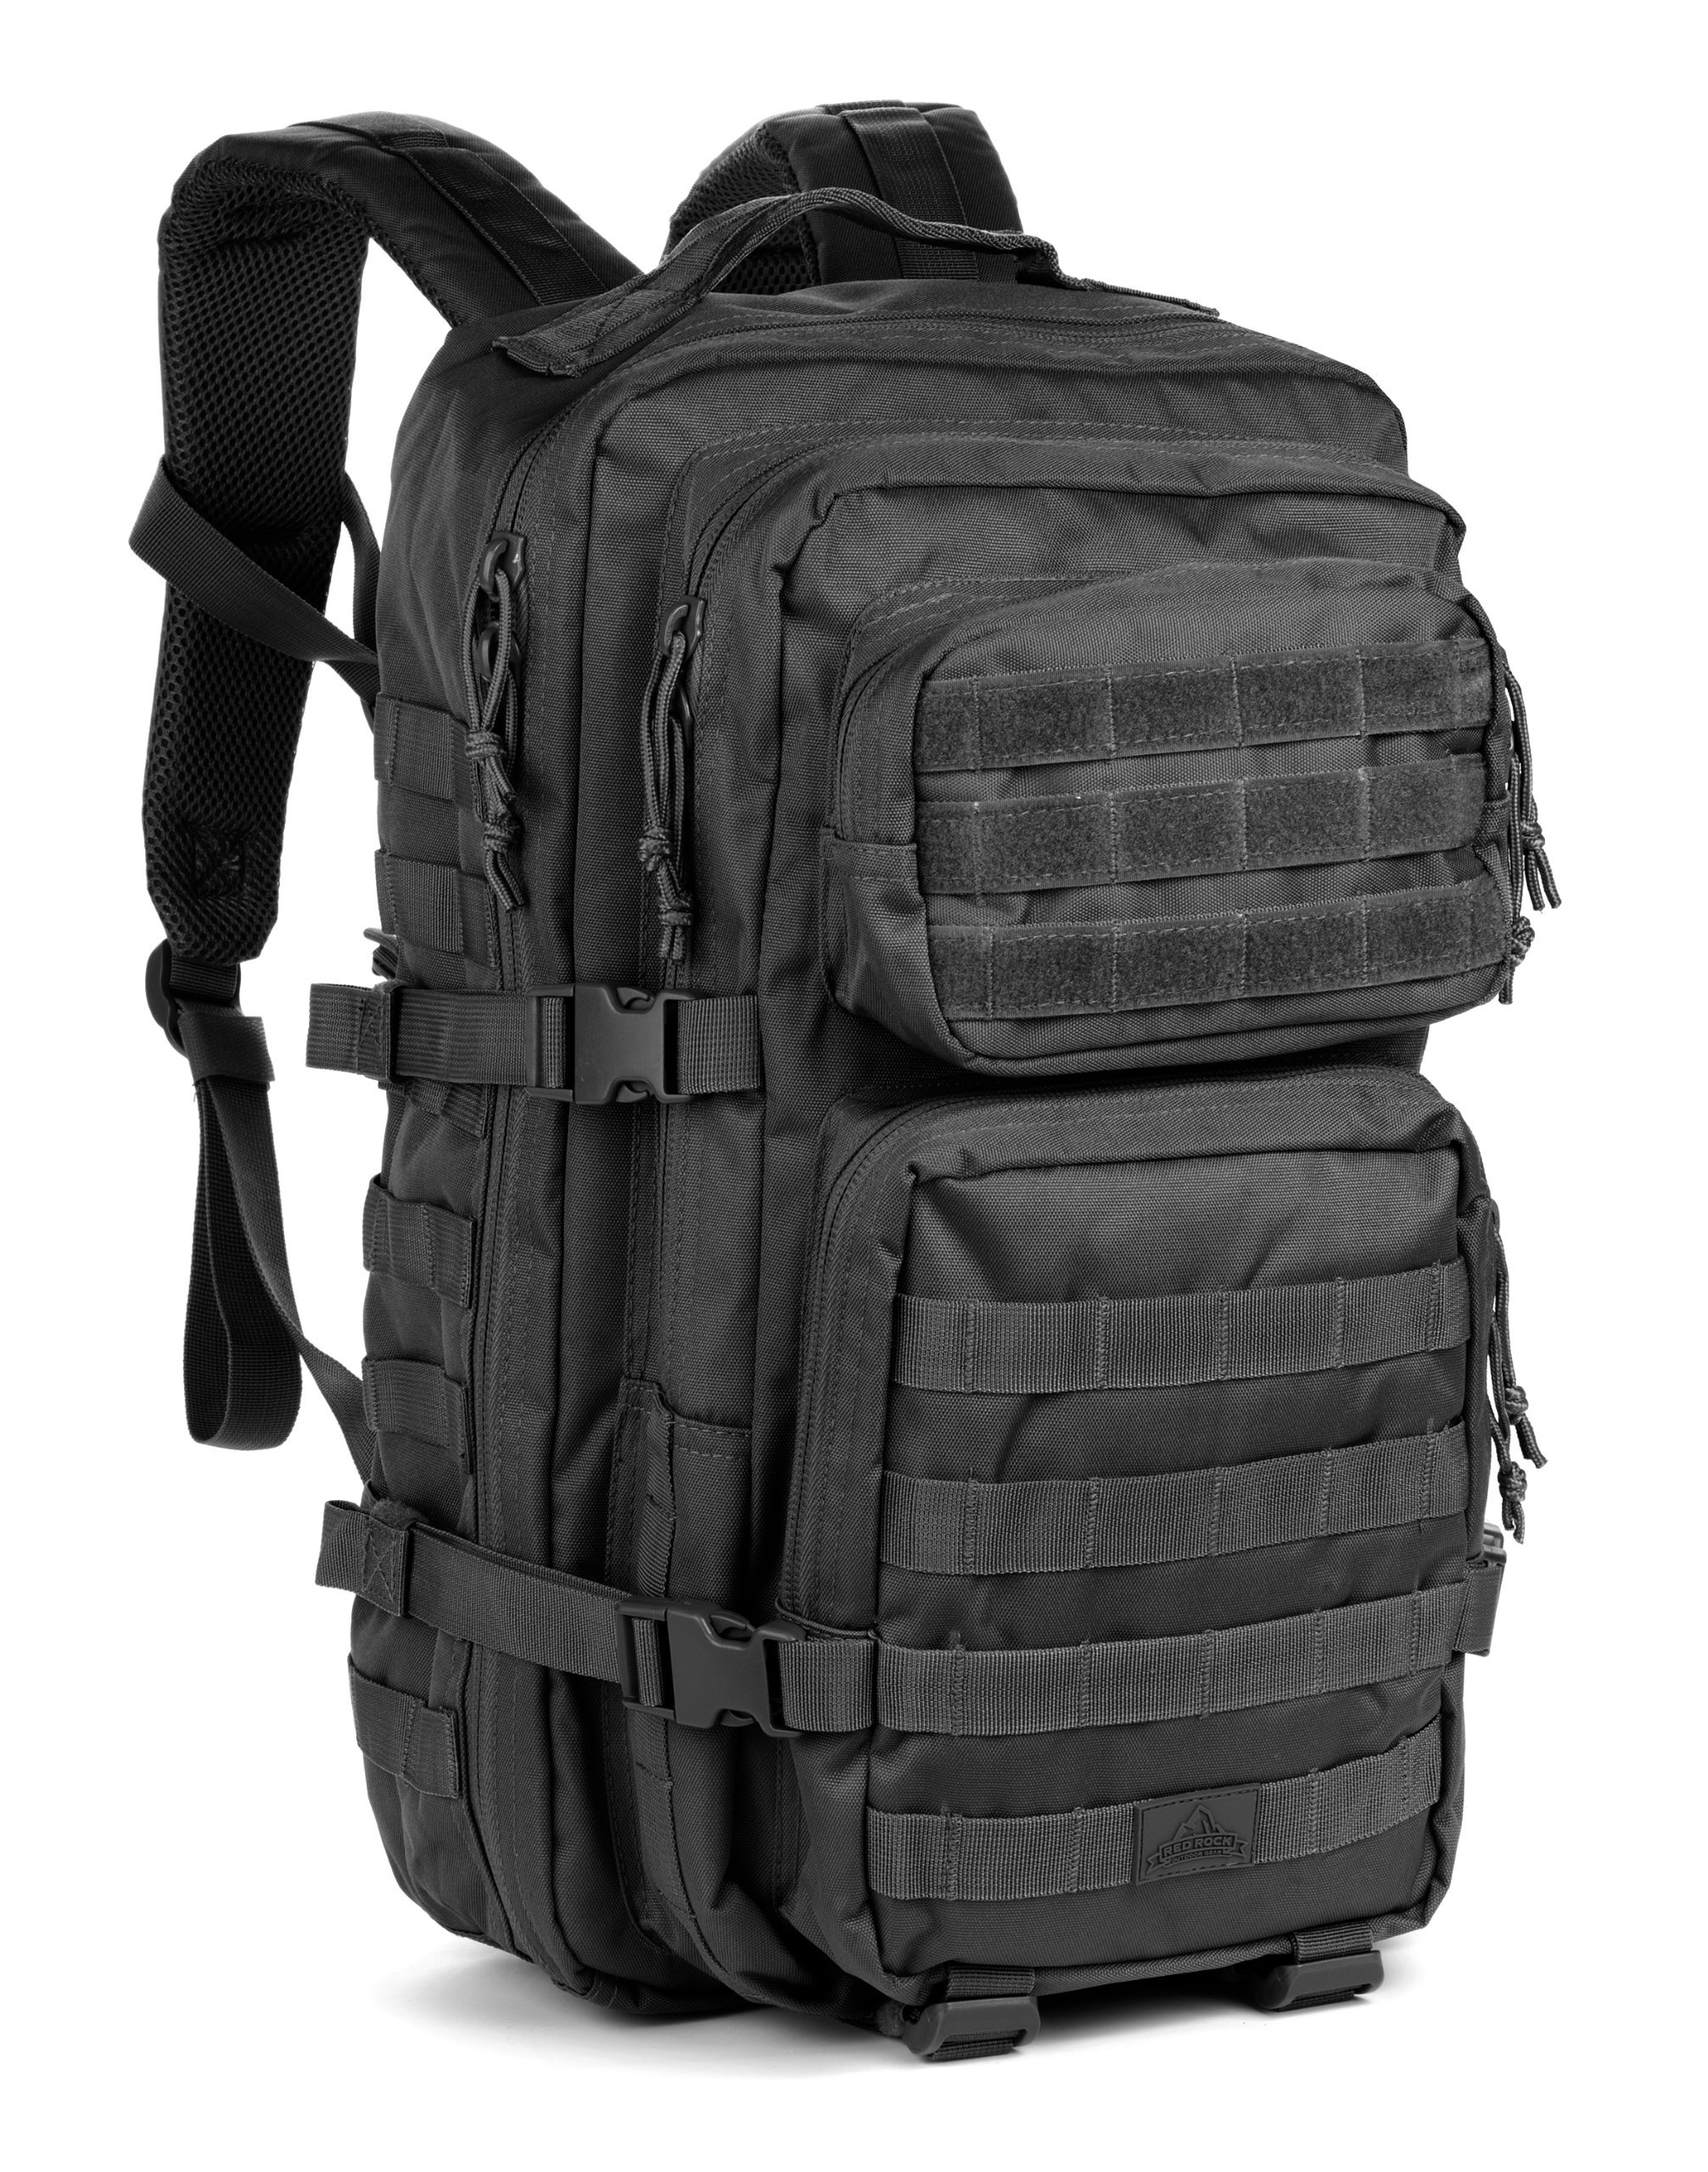 Red Rock Outdoor Gear Assault Pack (One Size, Black)